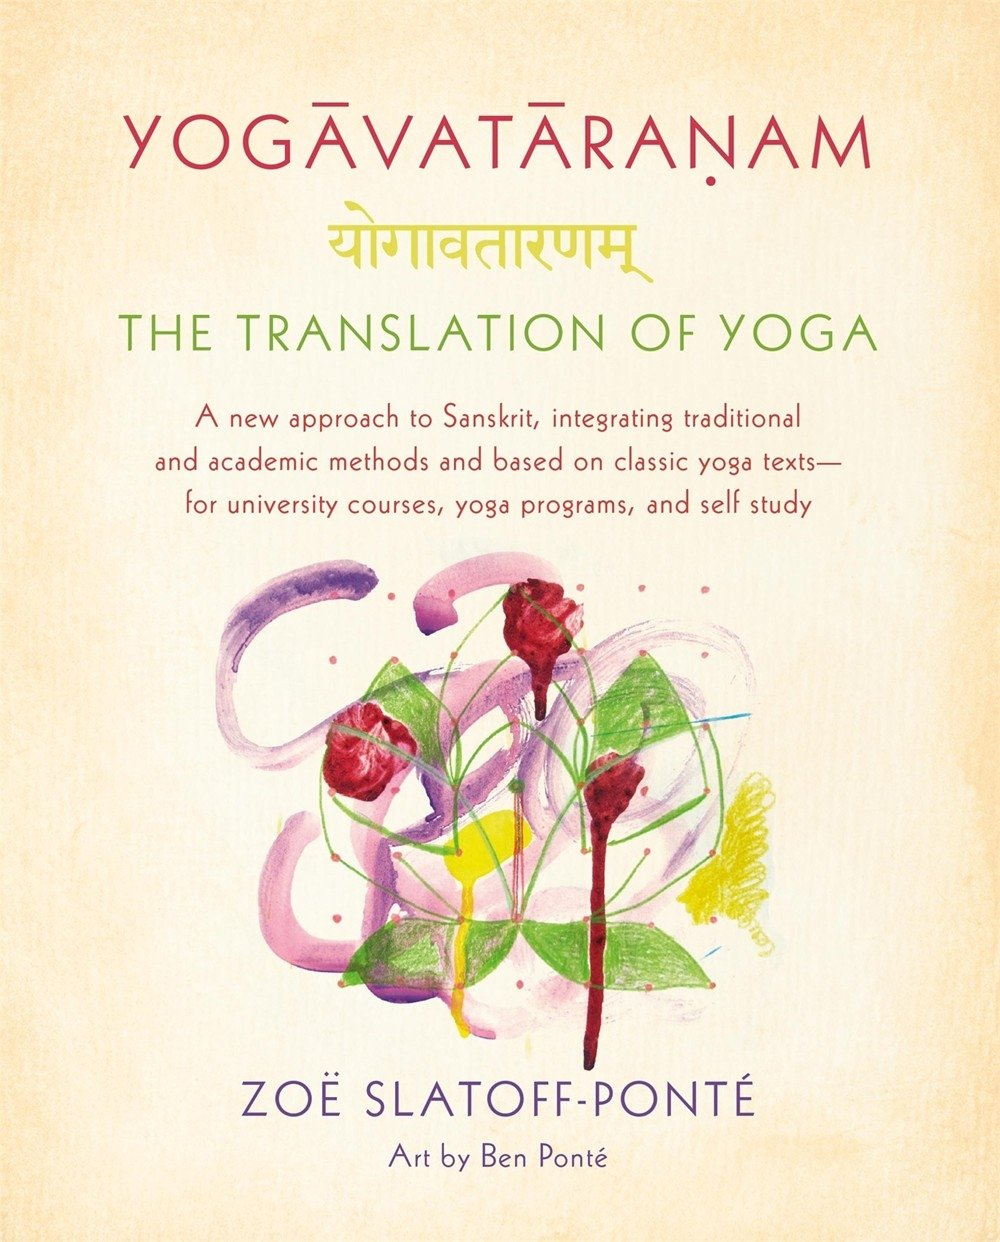 Yogavataranam The Translation Of Yoga A New Approach To Sanskrit Integrating Traditional And Academic Methods And Based On Classic Yoga Texts For University Courses Yoga Programs And Self Study Slatoff Ponte Zoe Ponte